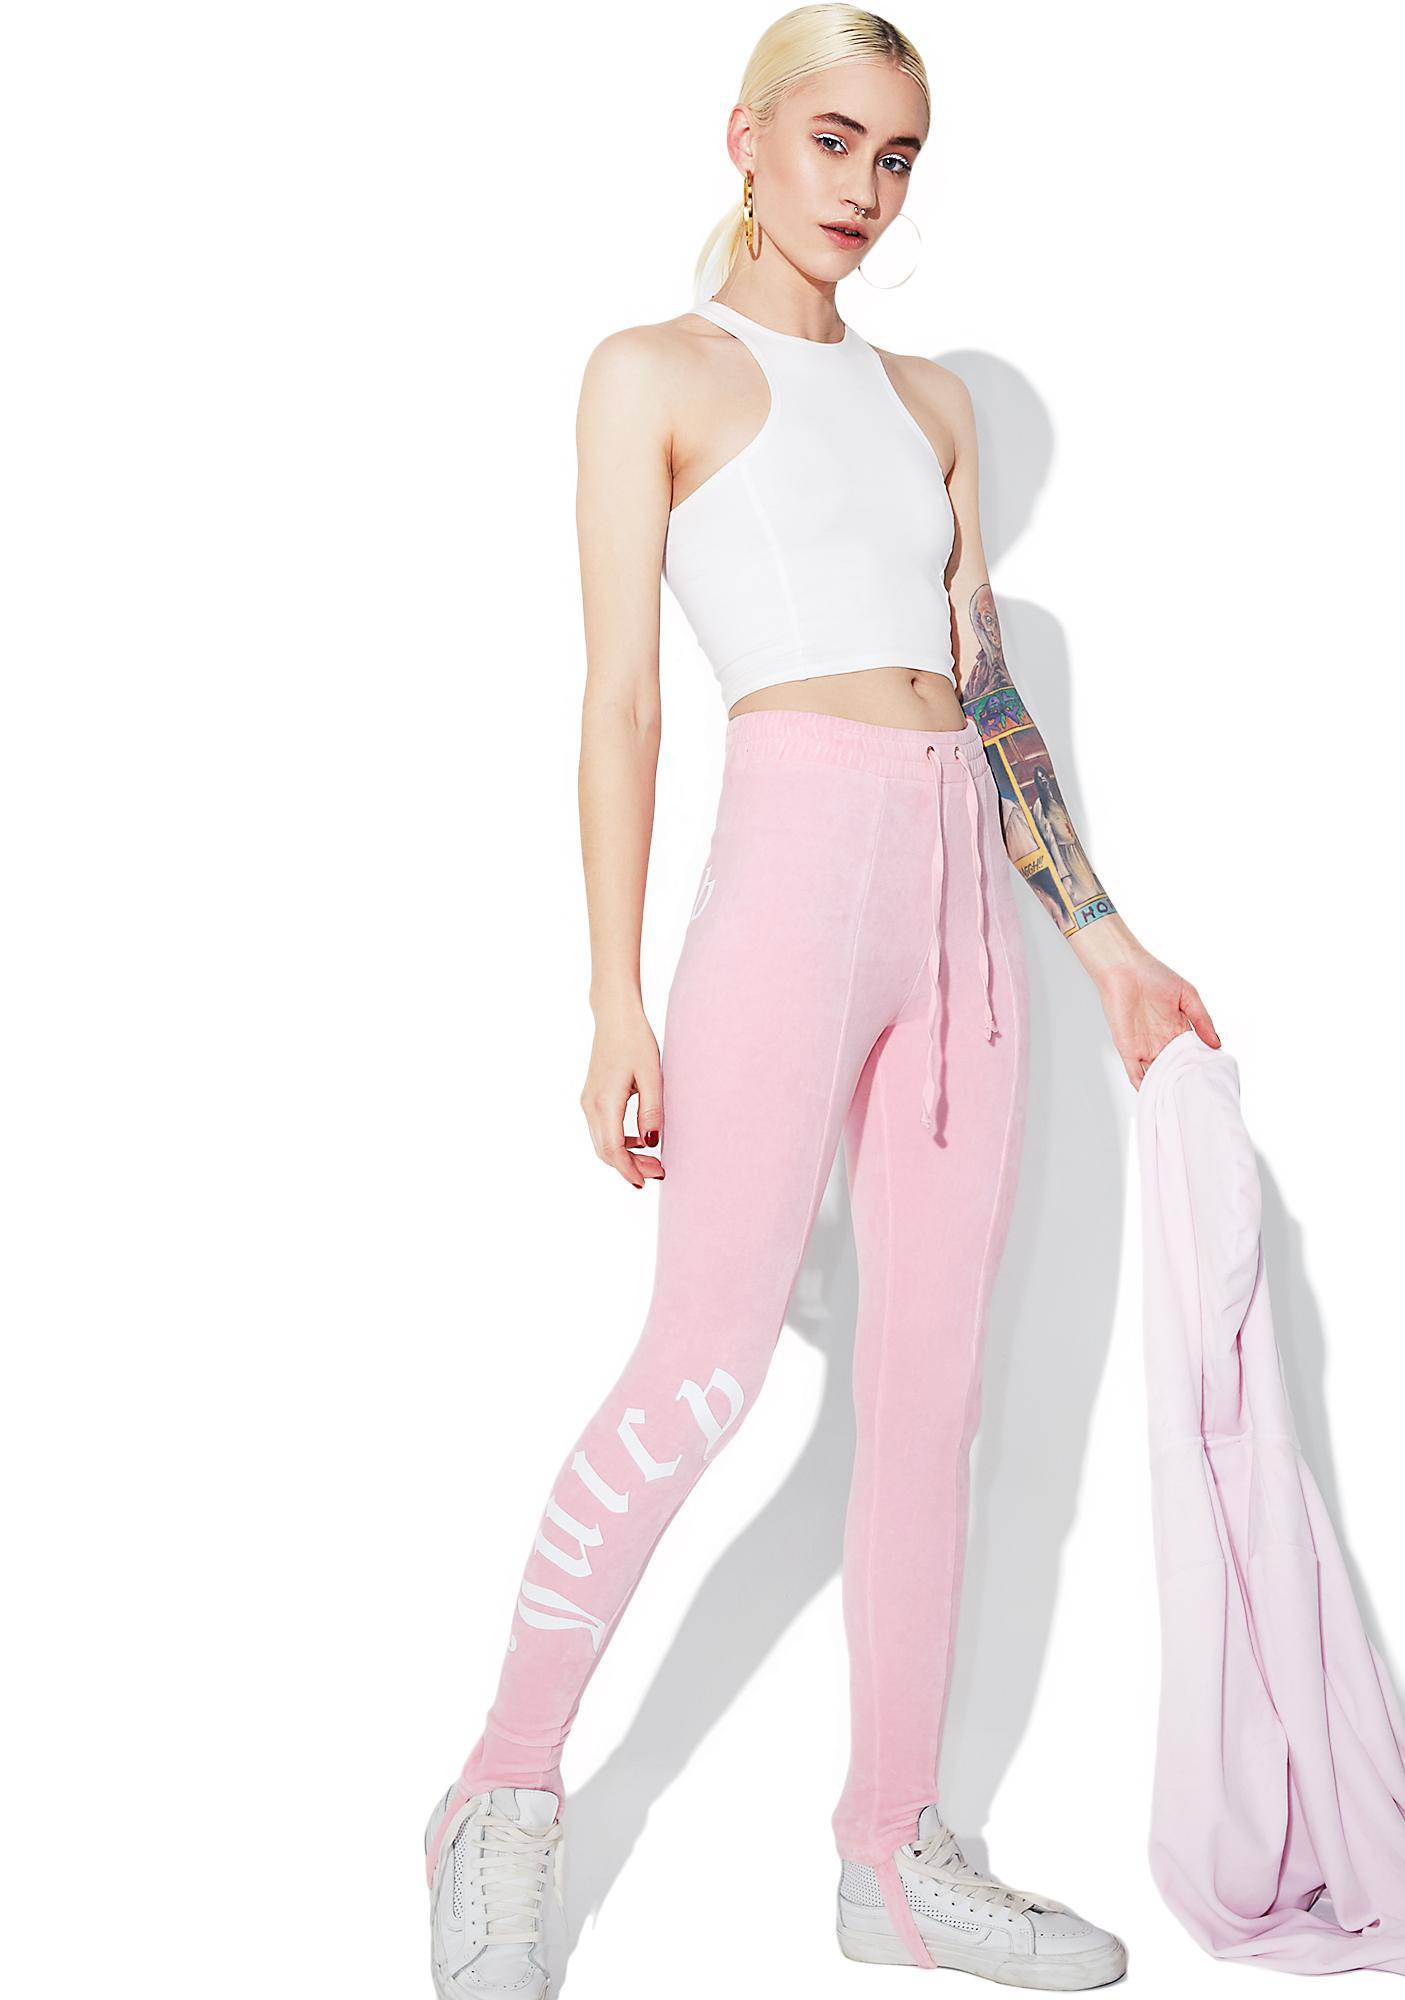 Fantastic JUICY COUTURE Riot Blush Velour Stirrup Leggings | Dolls Kill CU08